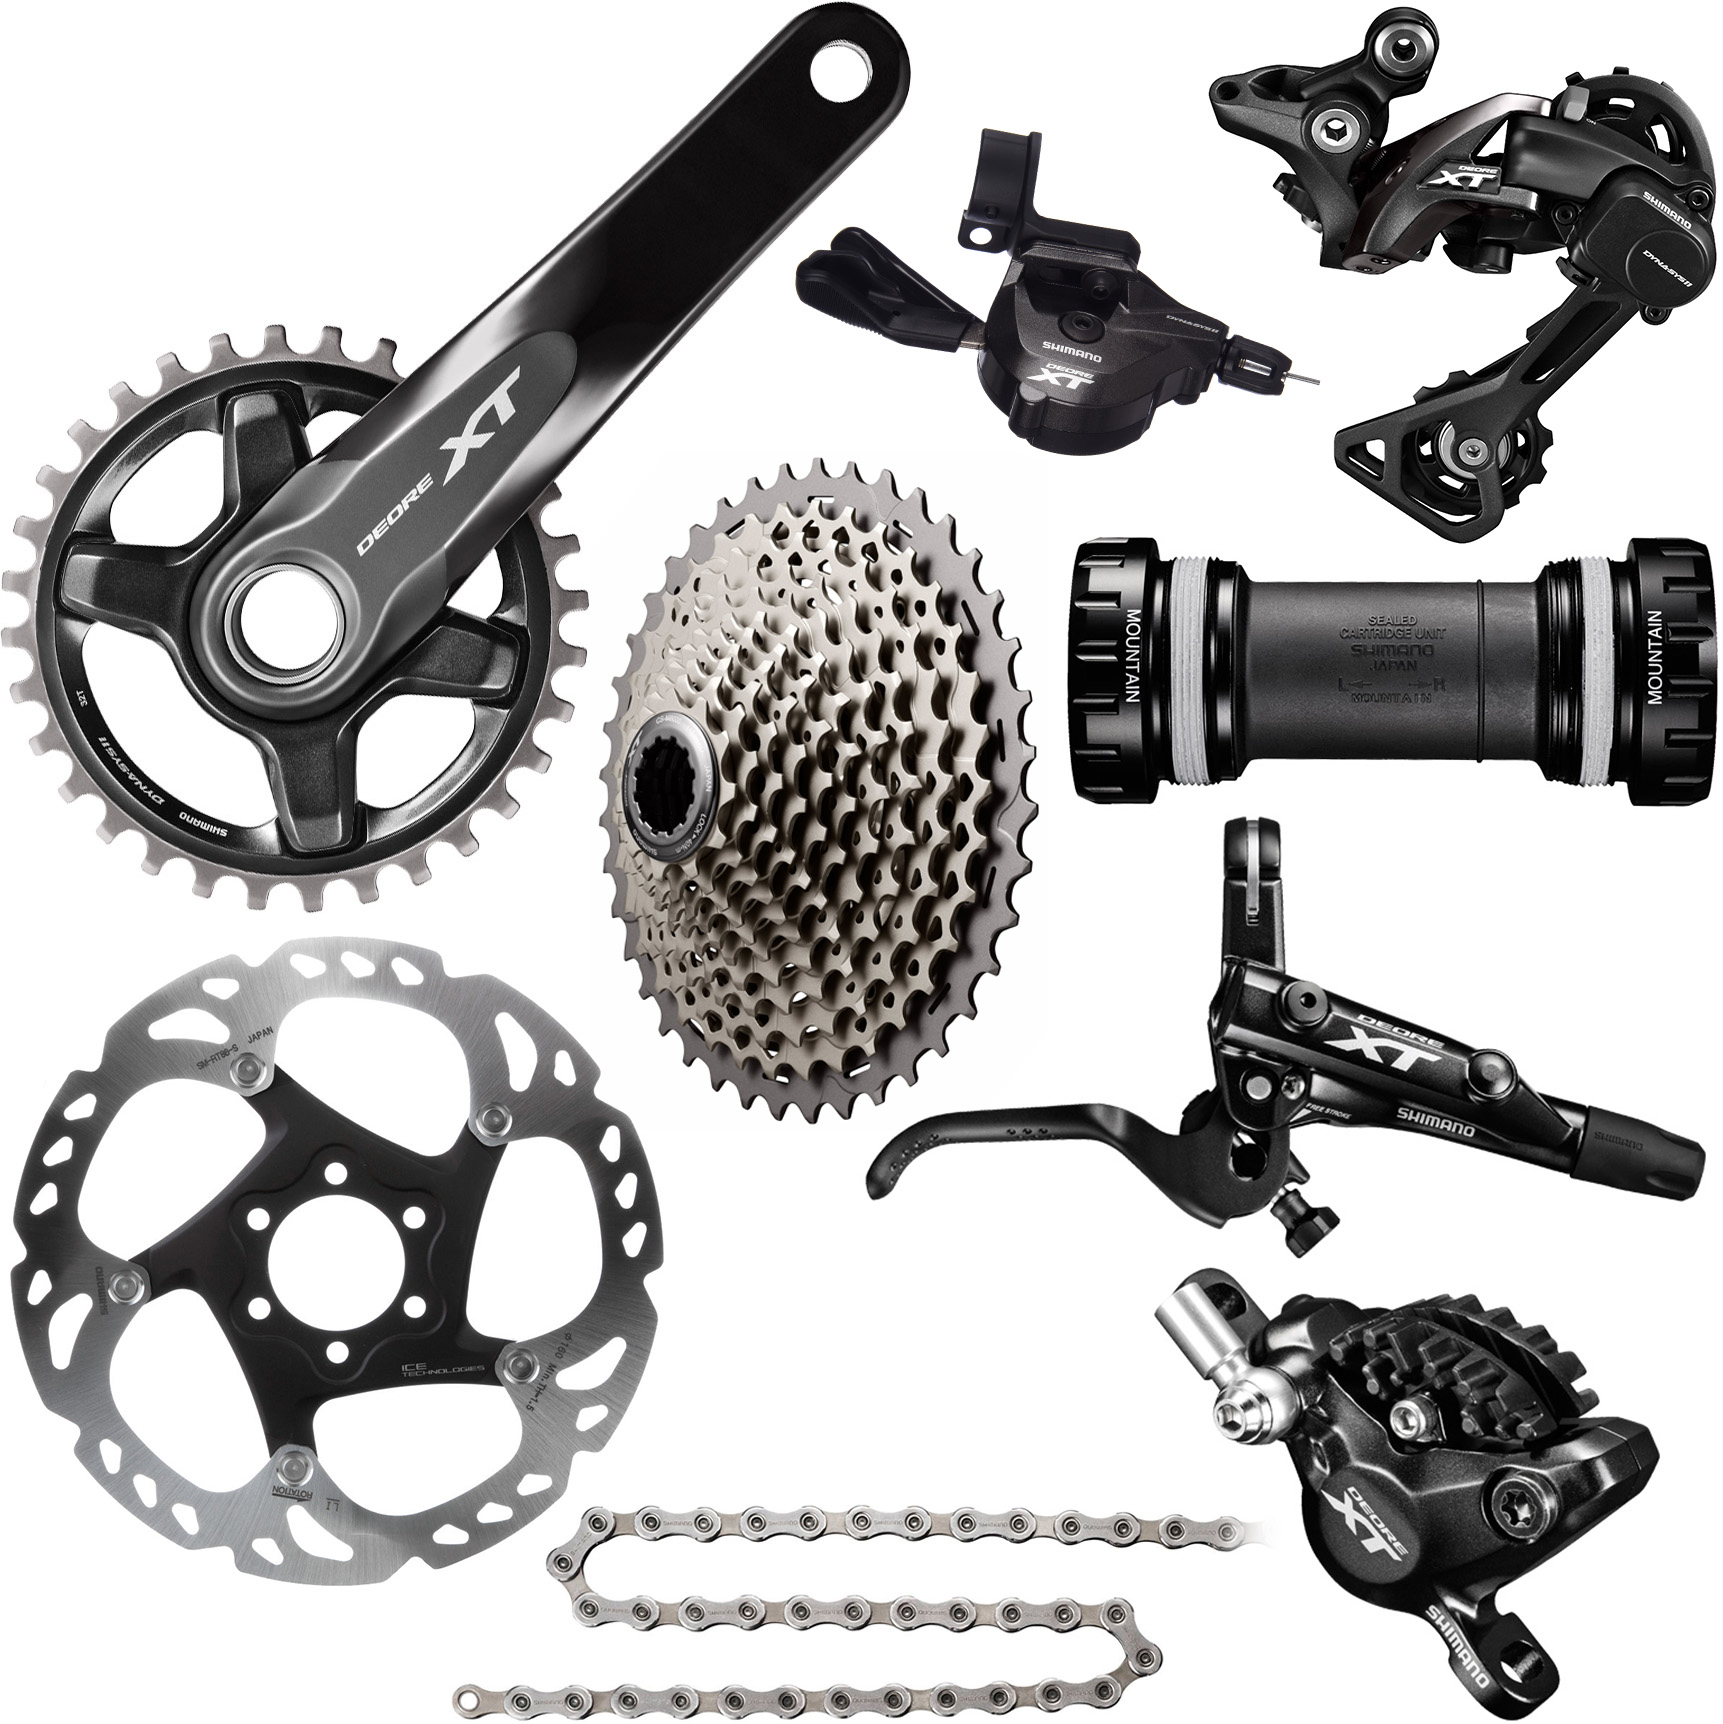 2d06a394589 Wiggle | Shimano XT M8000 1x11 Complete Groupset | Groupsets